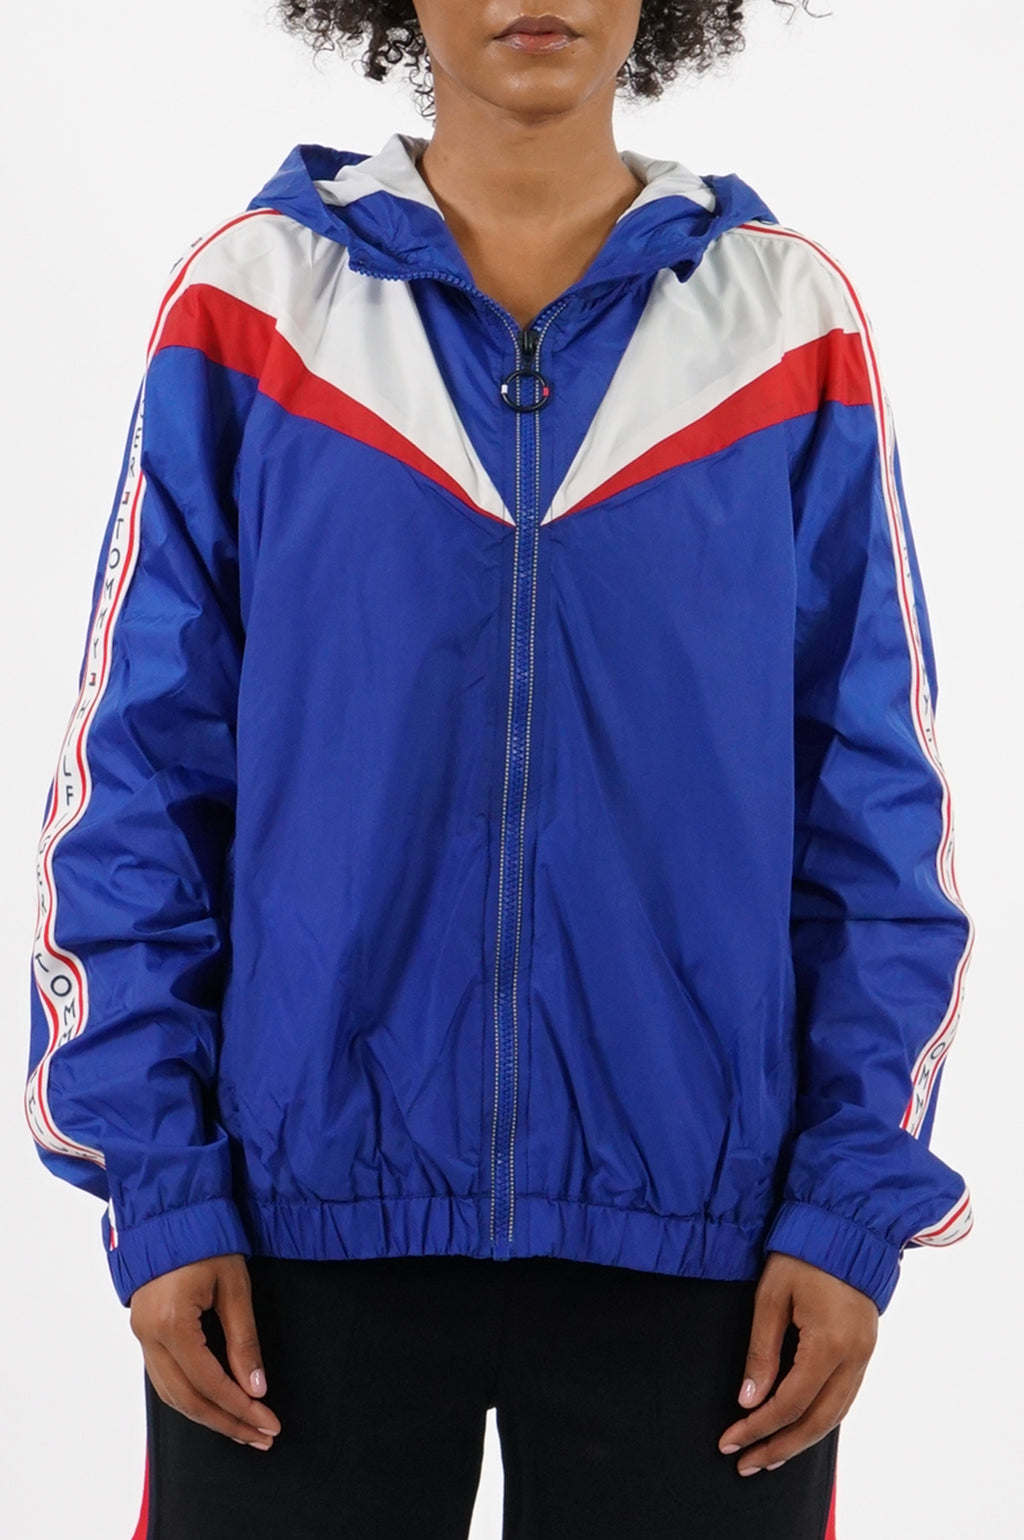 Tommy Hilfiger Activewear Women Hooded Colorblocked Windbreaker Jacket W/Logo Tape